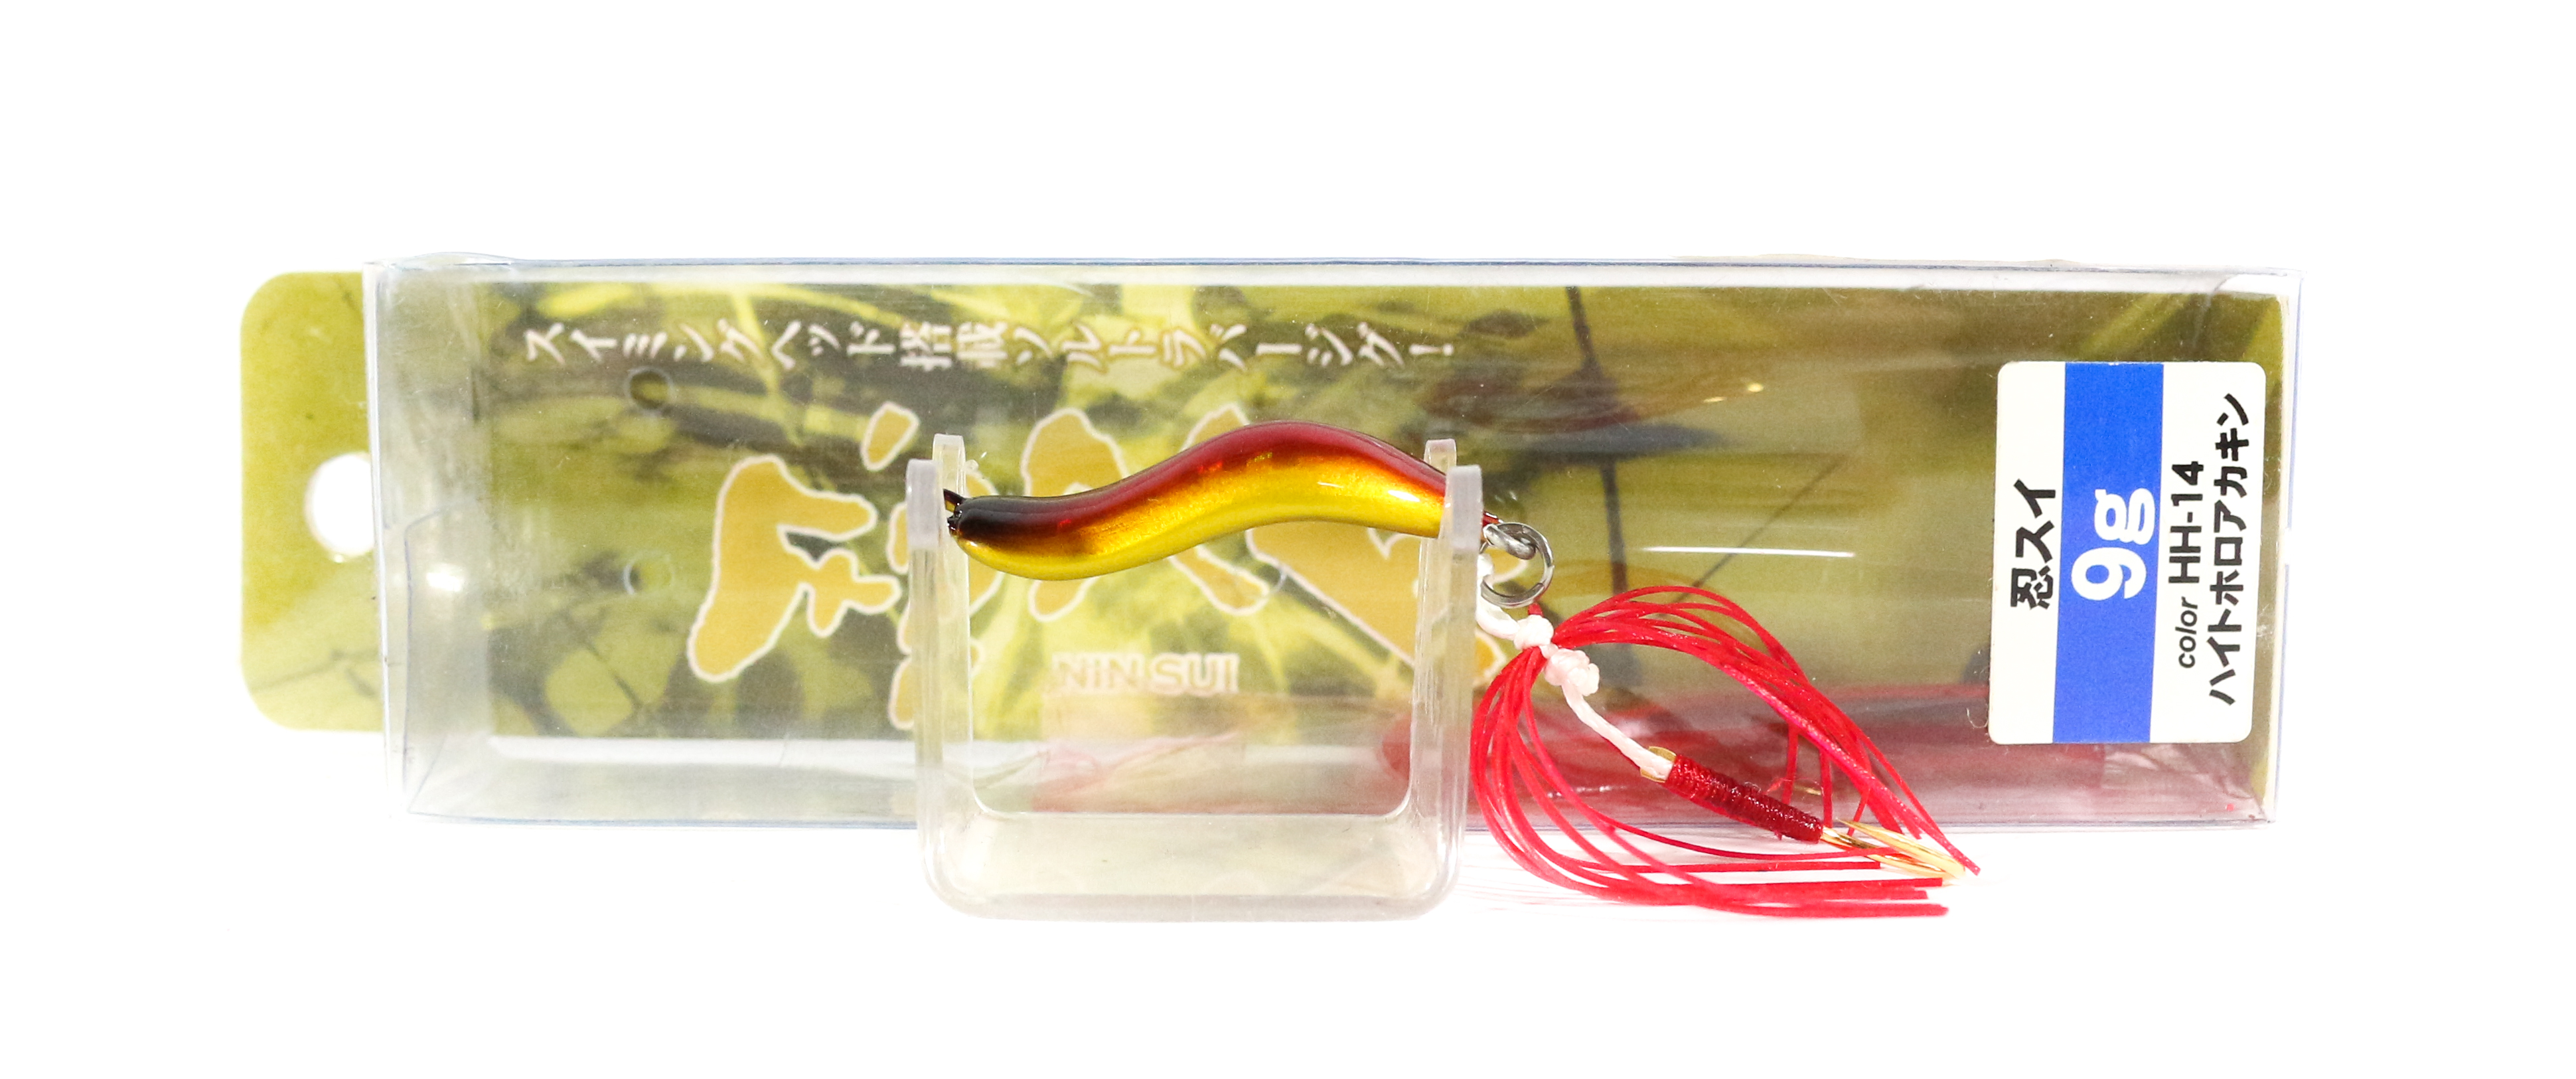 Bassday Nin Sui Inchiku Jig 9 Grams HHh-14 (4045)